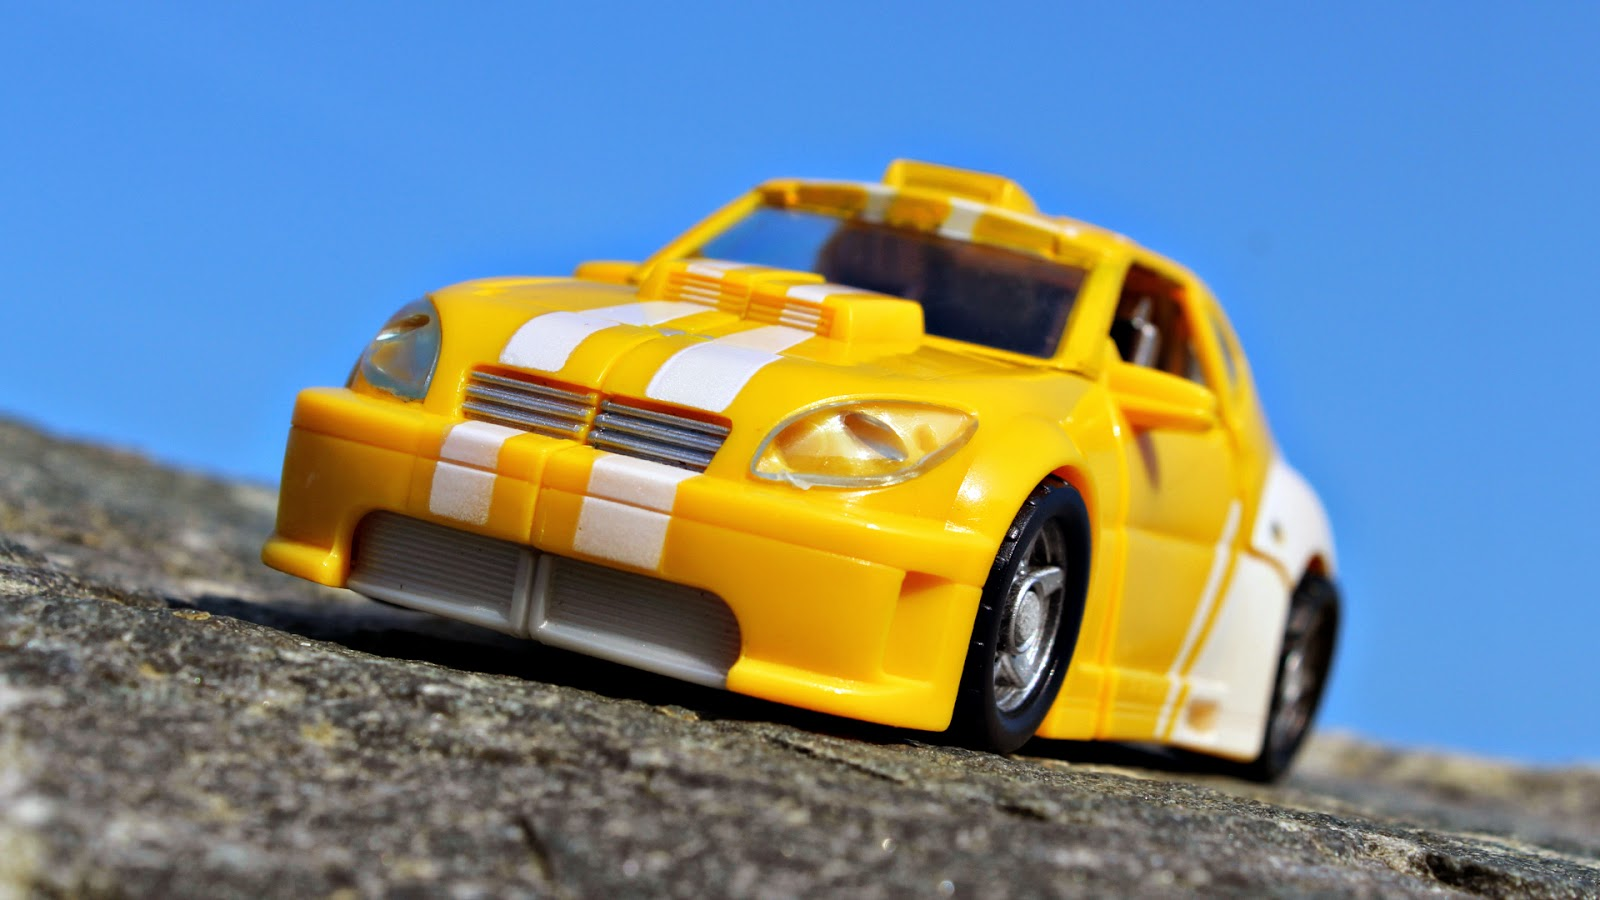 Transformers Classics Bumblebee action figure toy Autobot Deluxe car The MEC